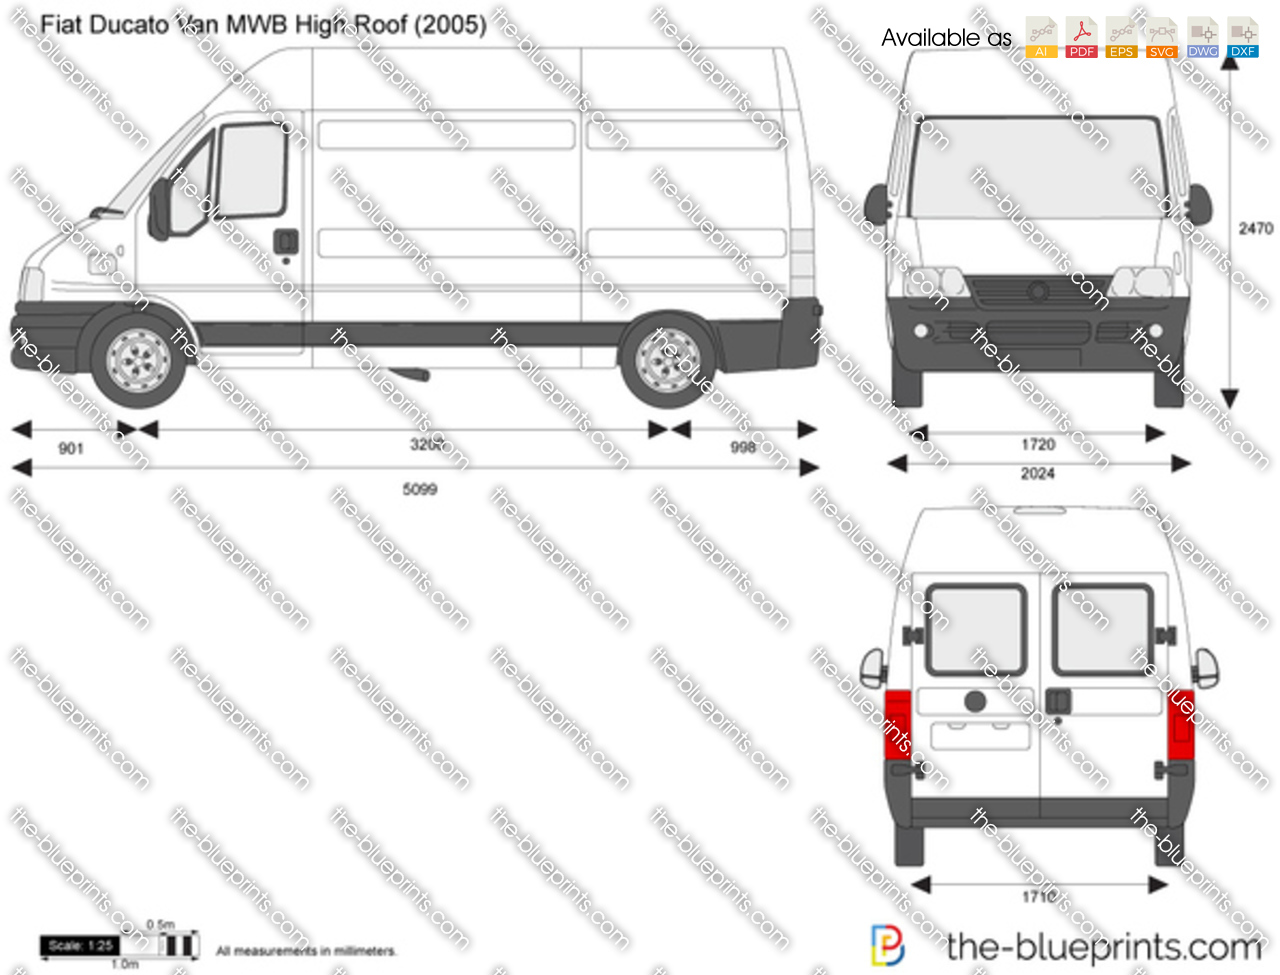 fiat ducato van mwb high roof